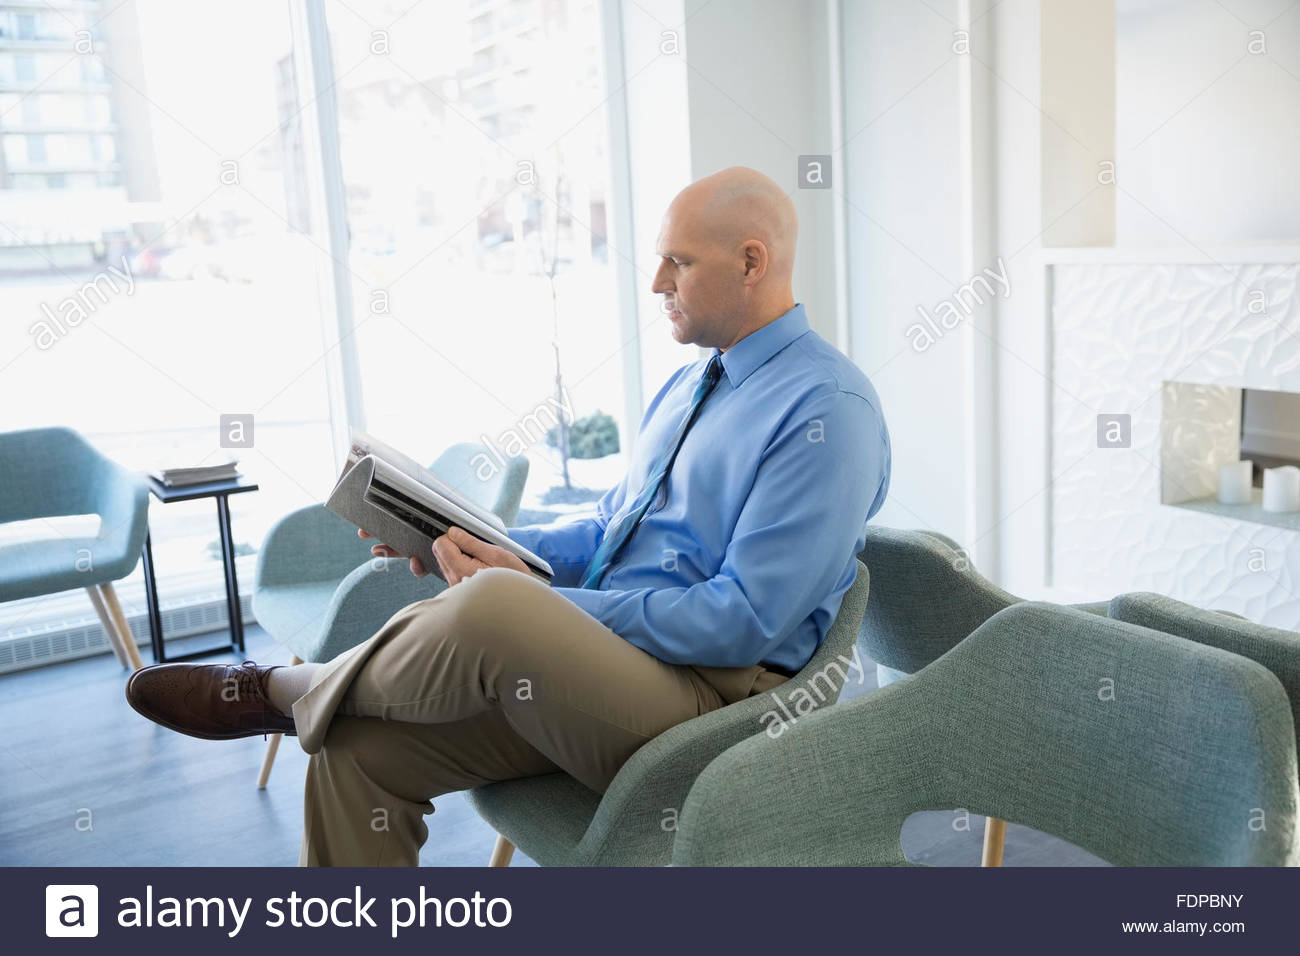 Man reading newspaper en attente dans le hall de la clinique Photo Stock